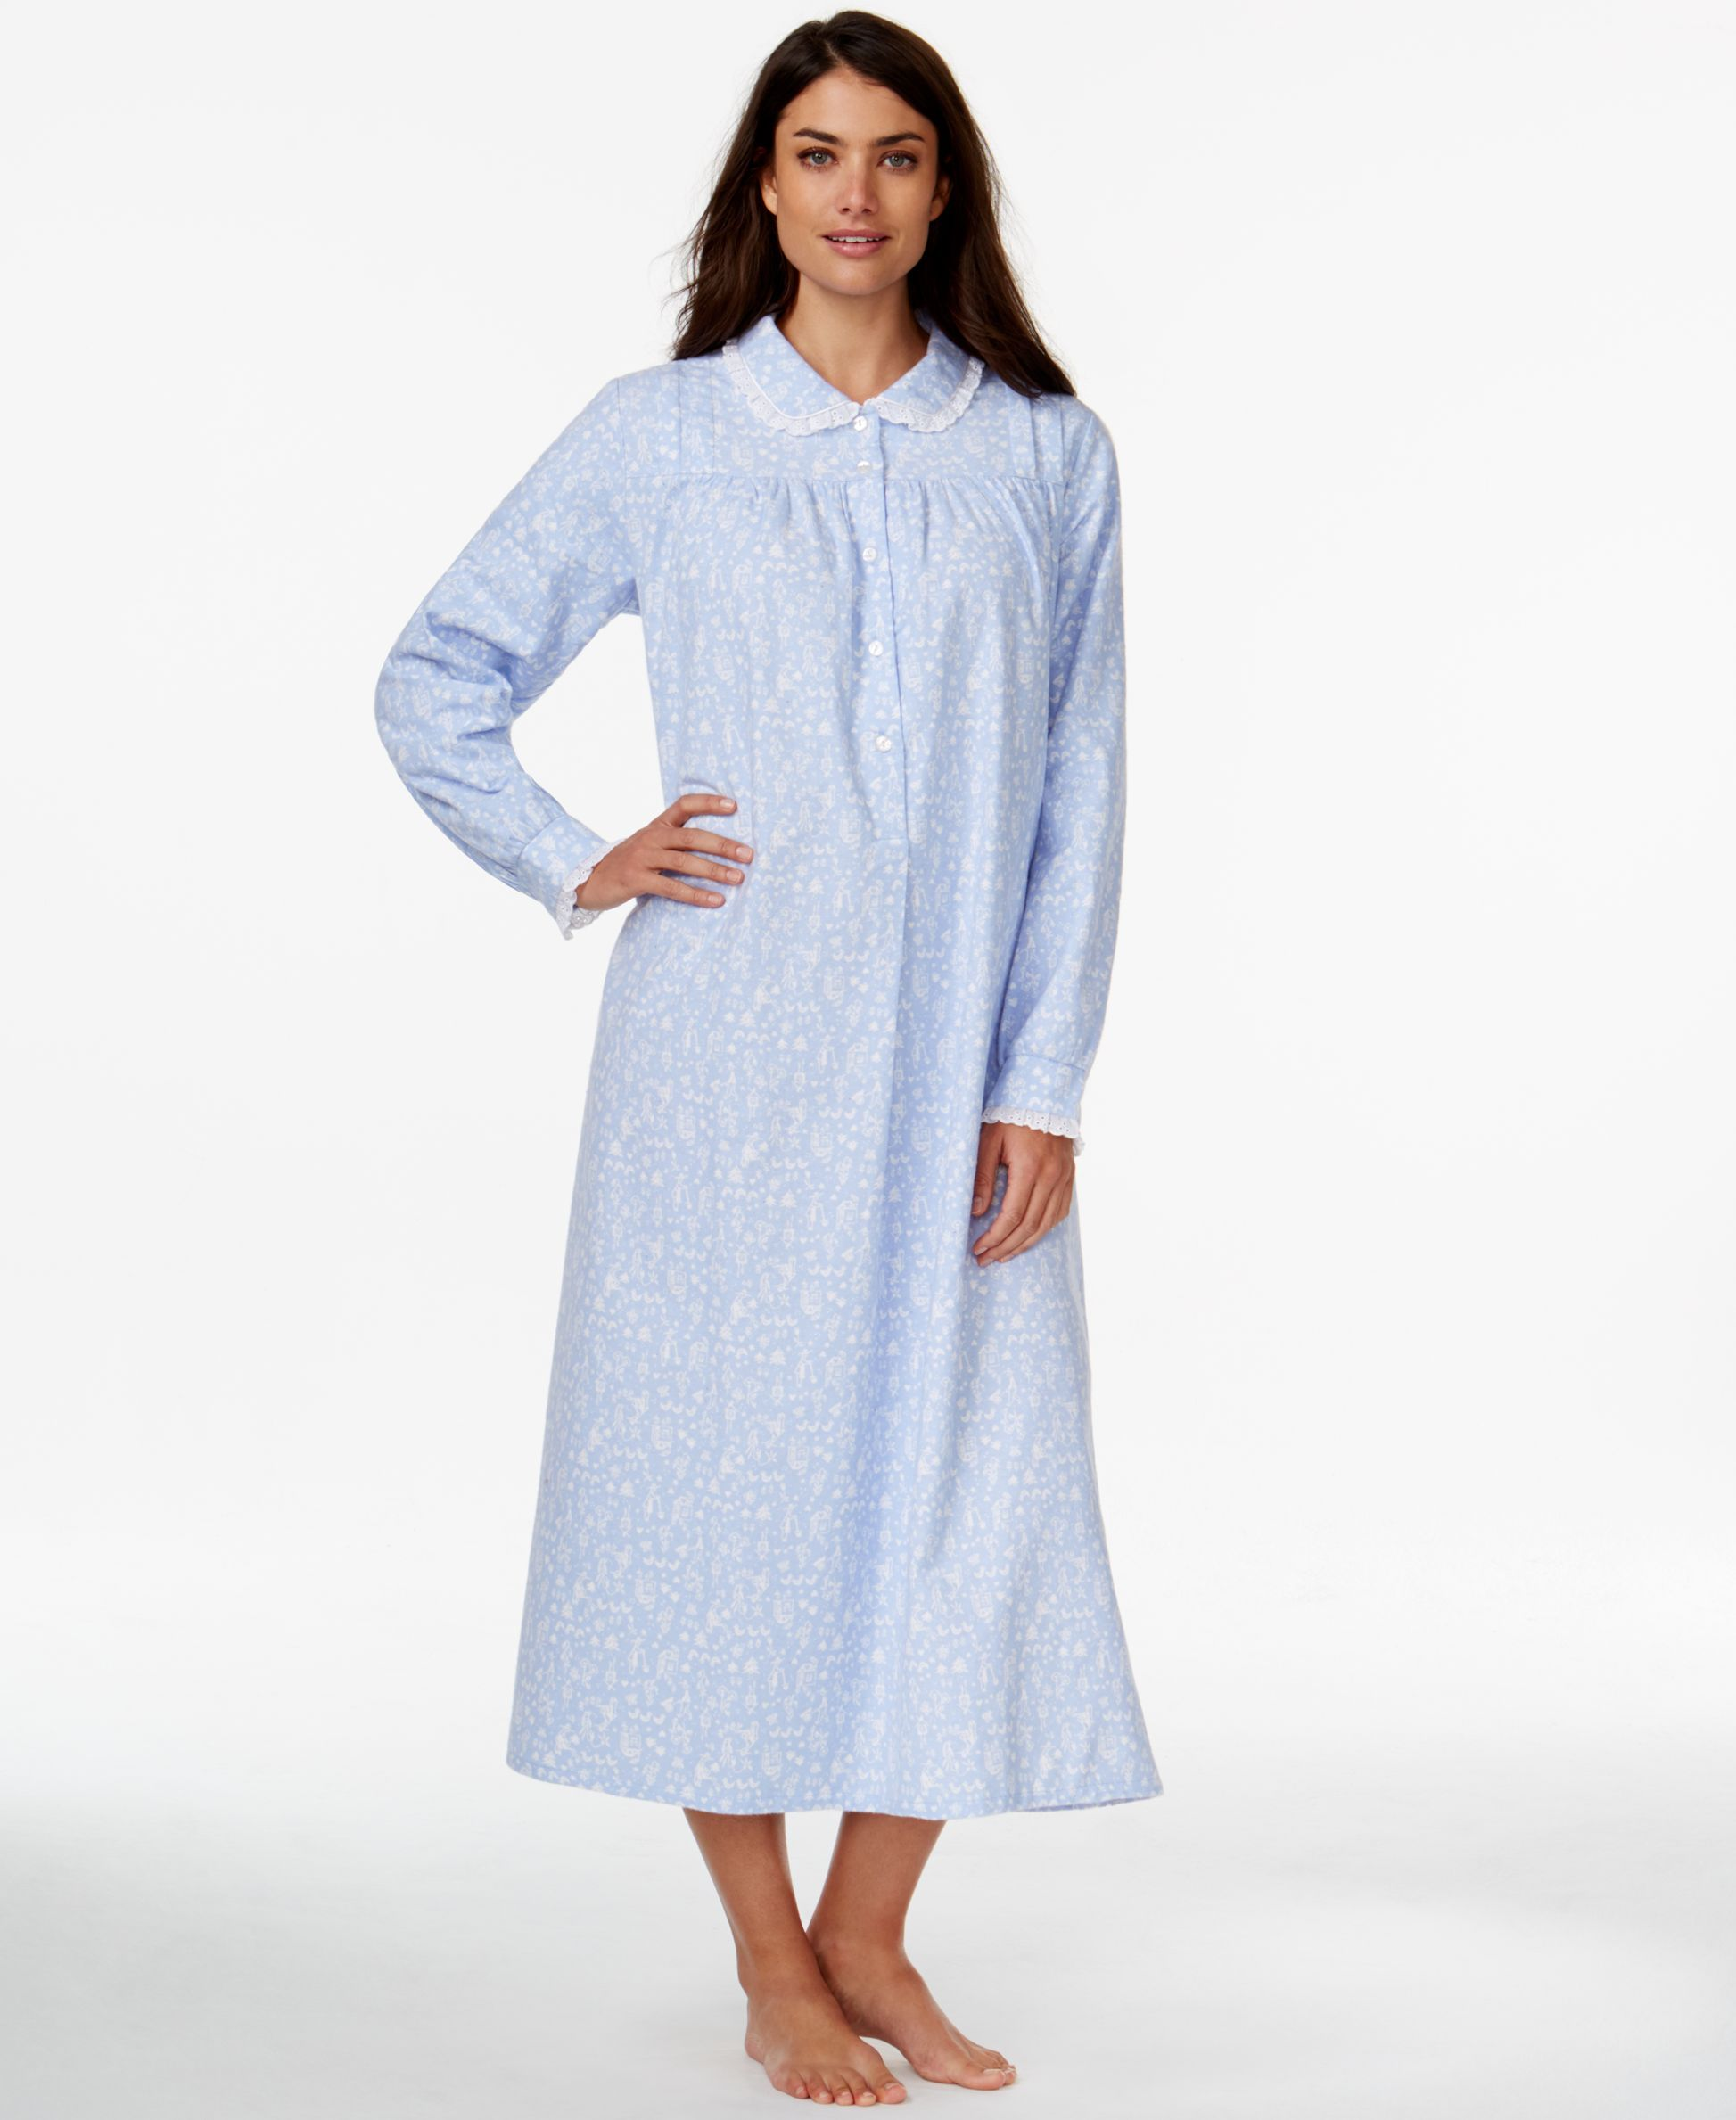 f5c22450ec Lanz of Salzburg Collared Flannel Nightgown